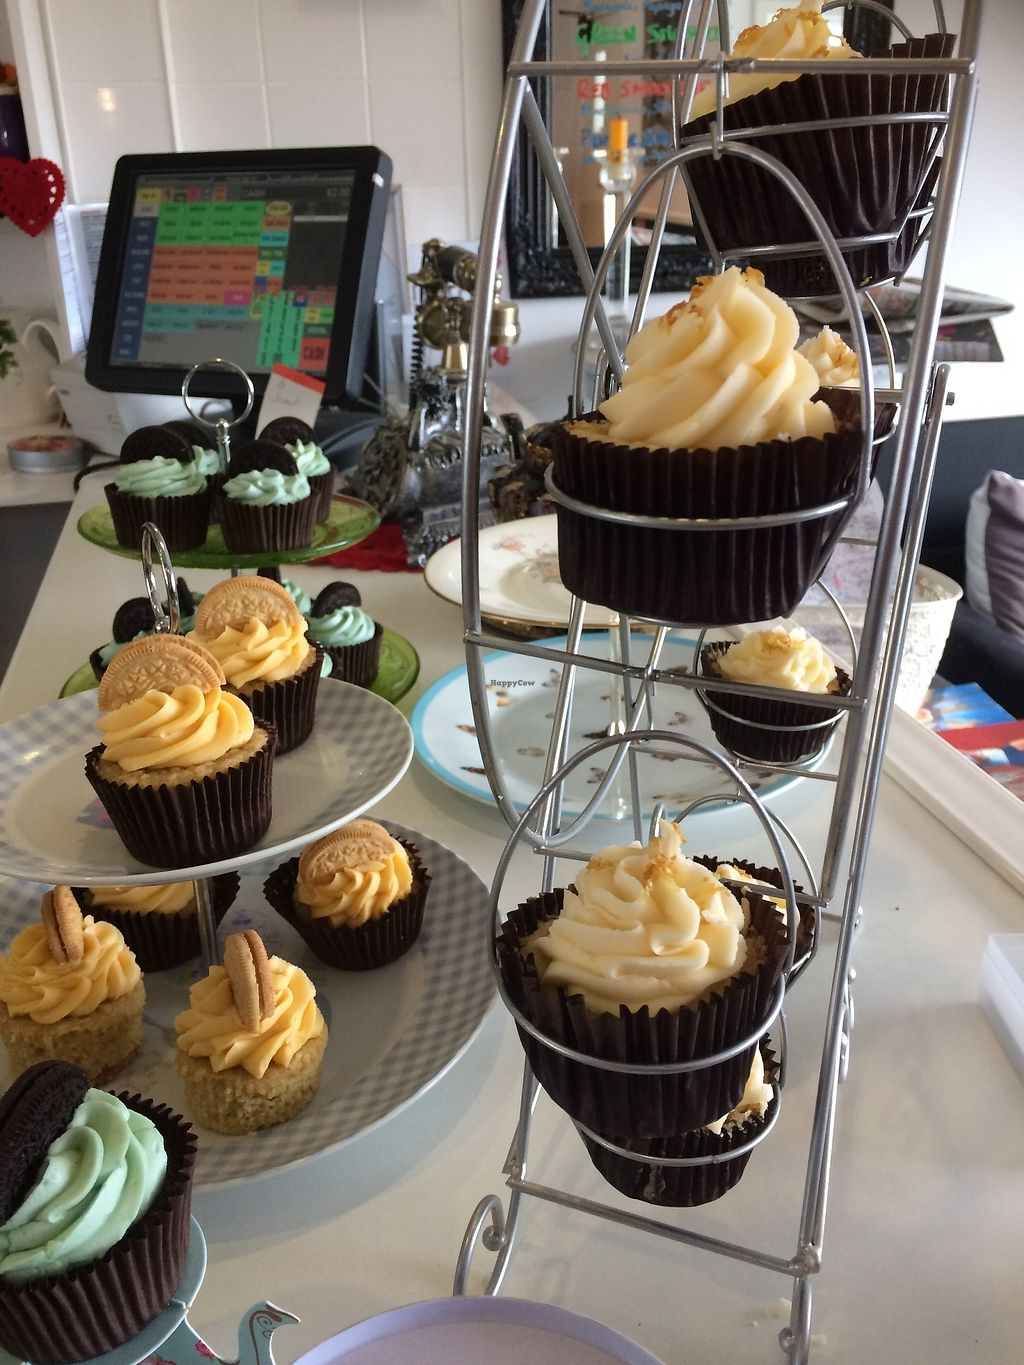 """Photo of Aingels Cafe Bistro  by <a href=""""/members/profile/xraysez"""">xraysez</a> <br/>Cupcakes.  <br/> August 25, 2017  - <a href='/contact/abuse/image/73642/296940'>Report</a>"""